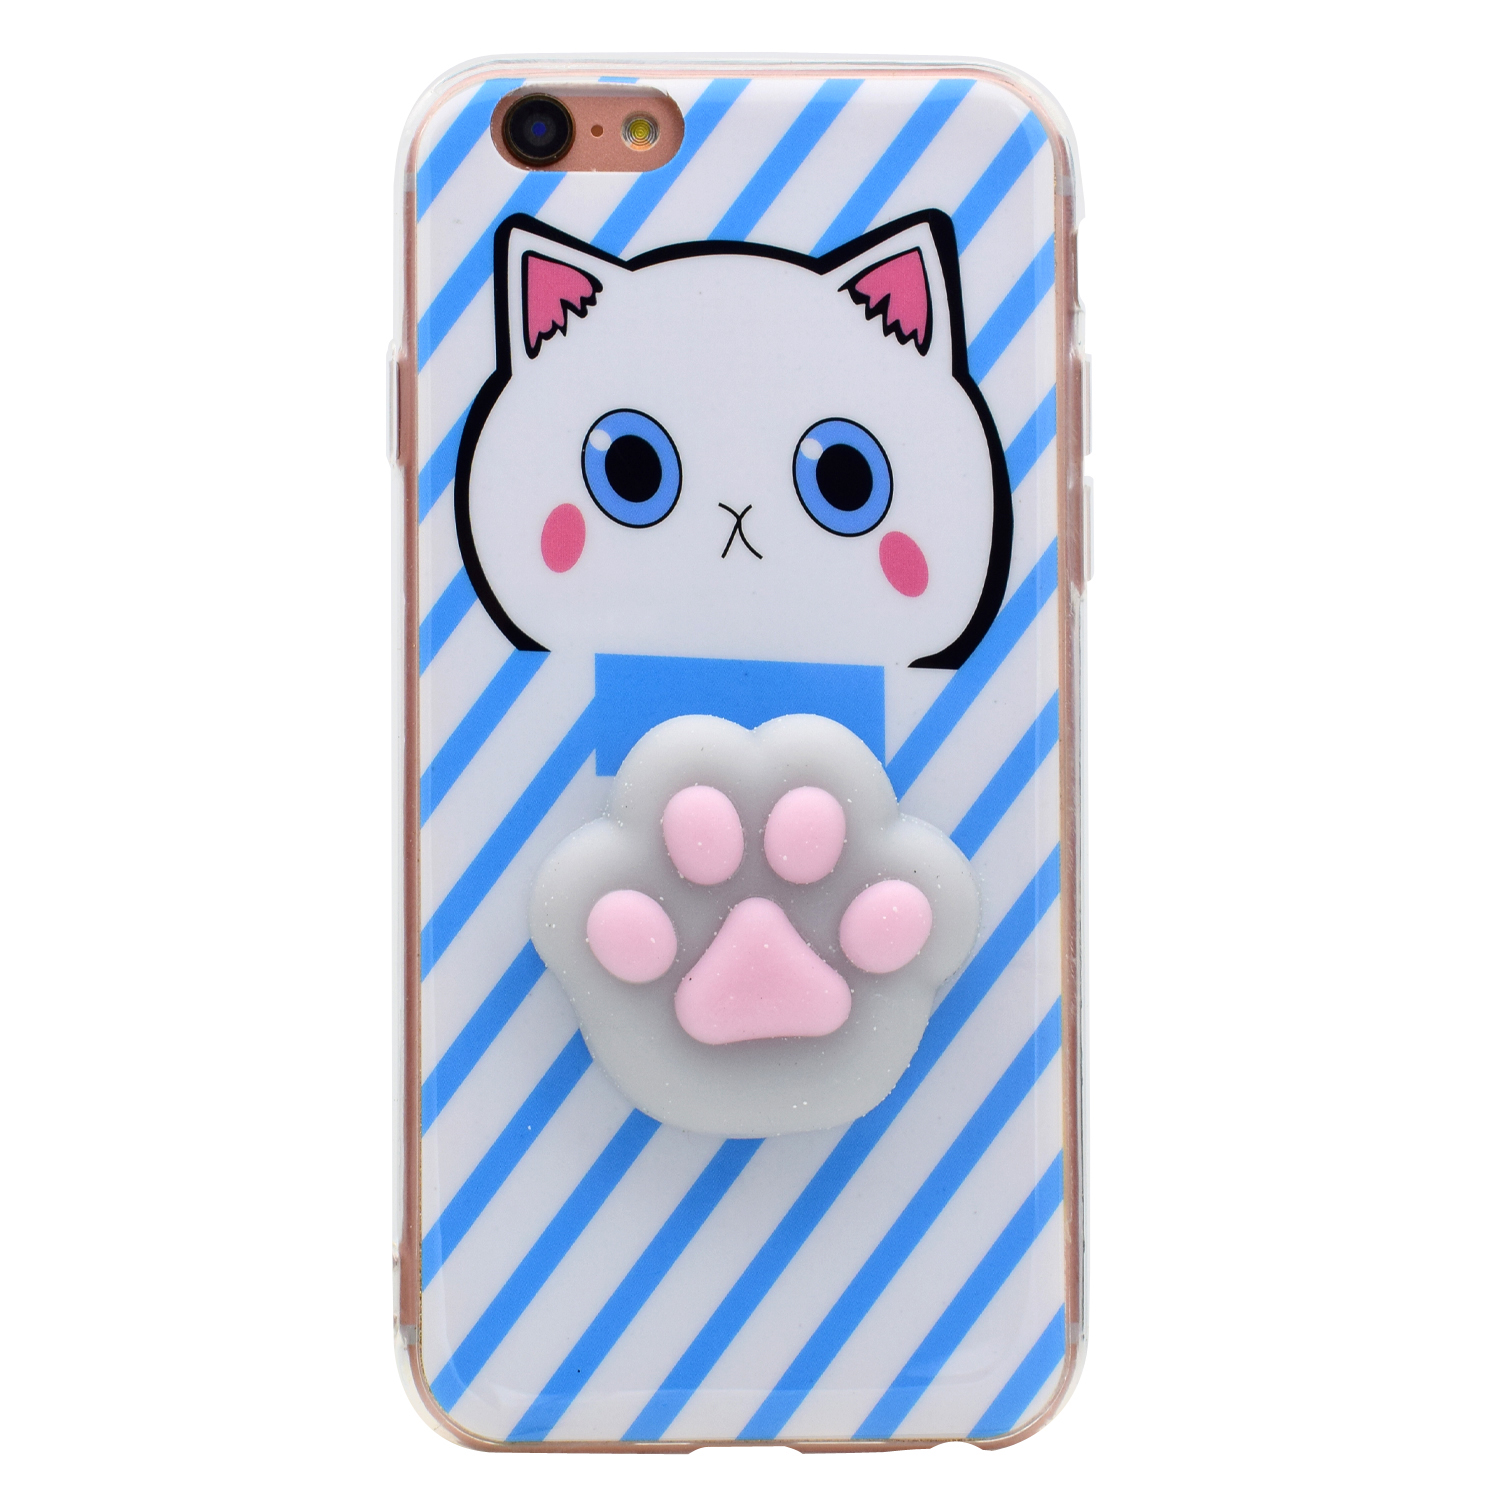 3d iphone cases luxury 3d soft silicone cat tpu phone cover 2207